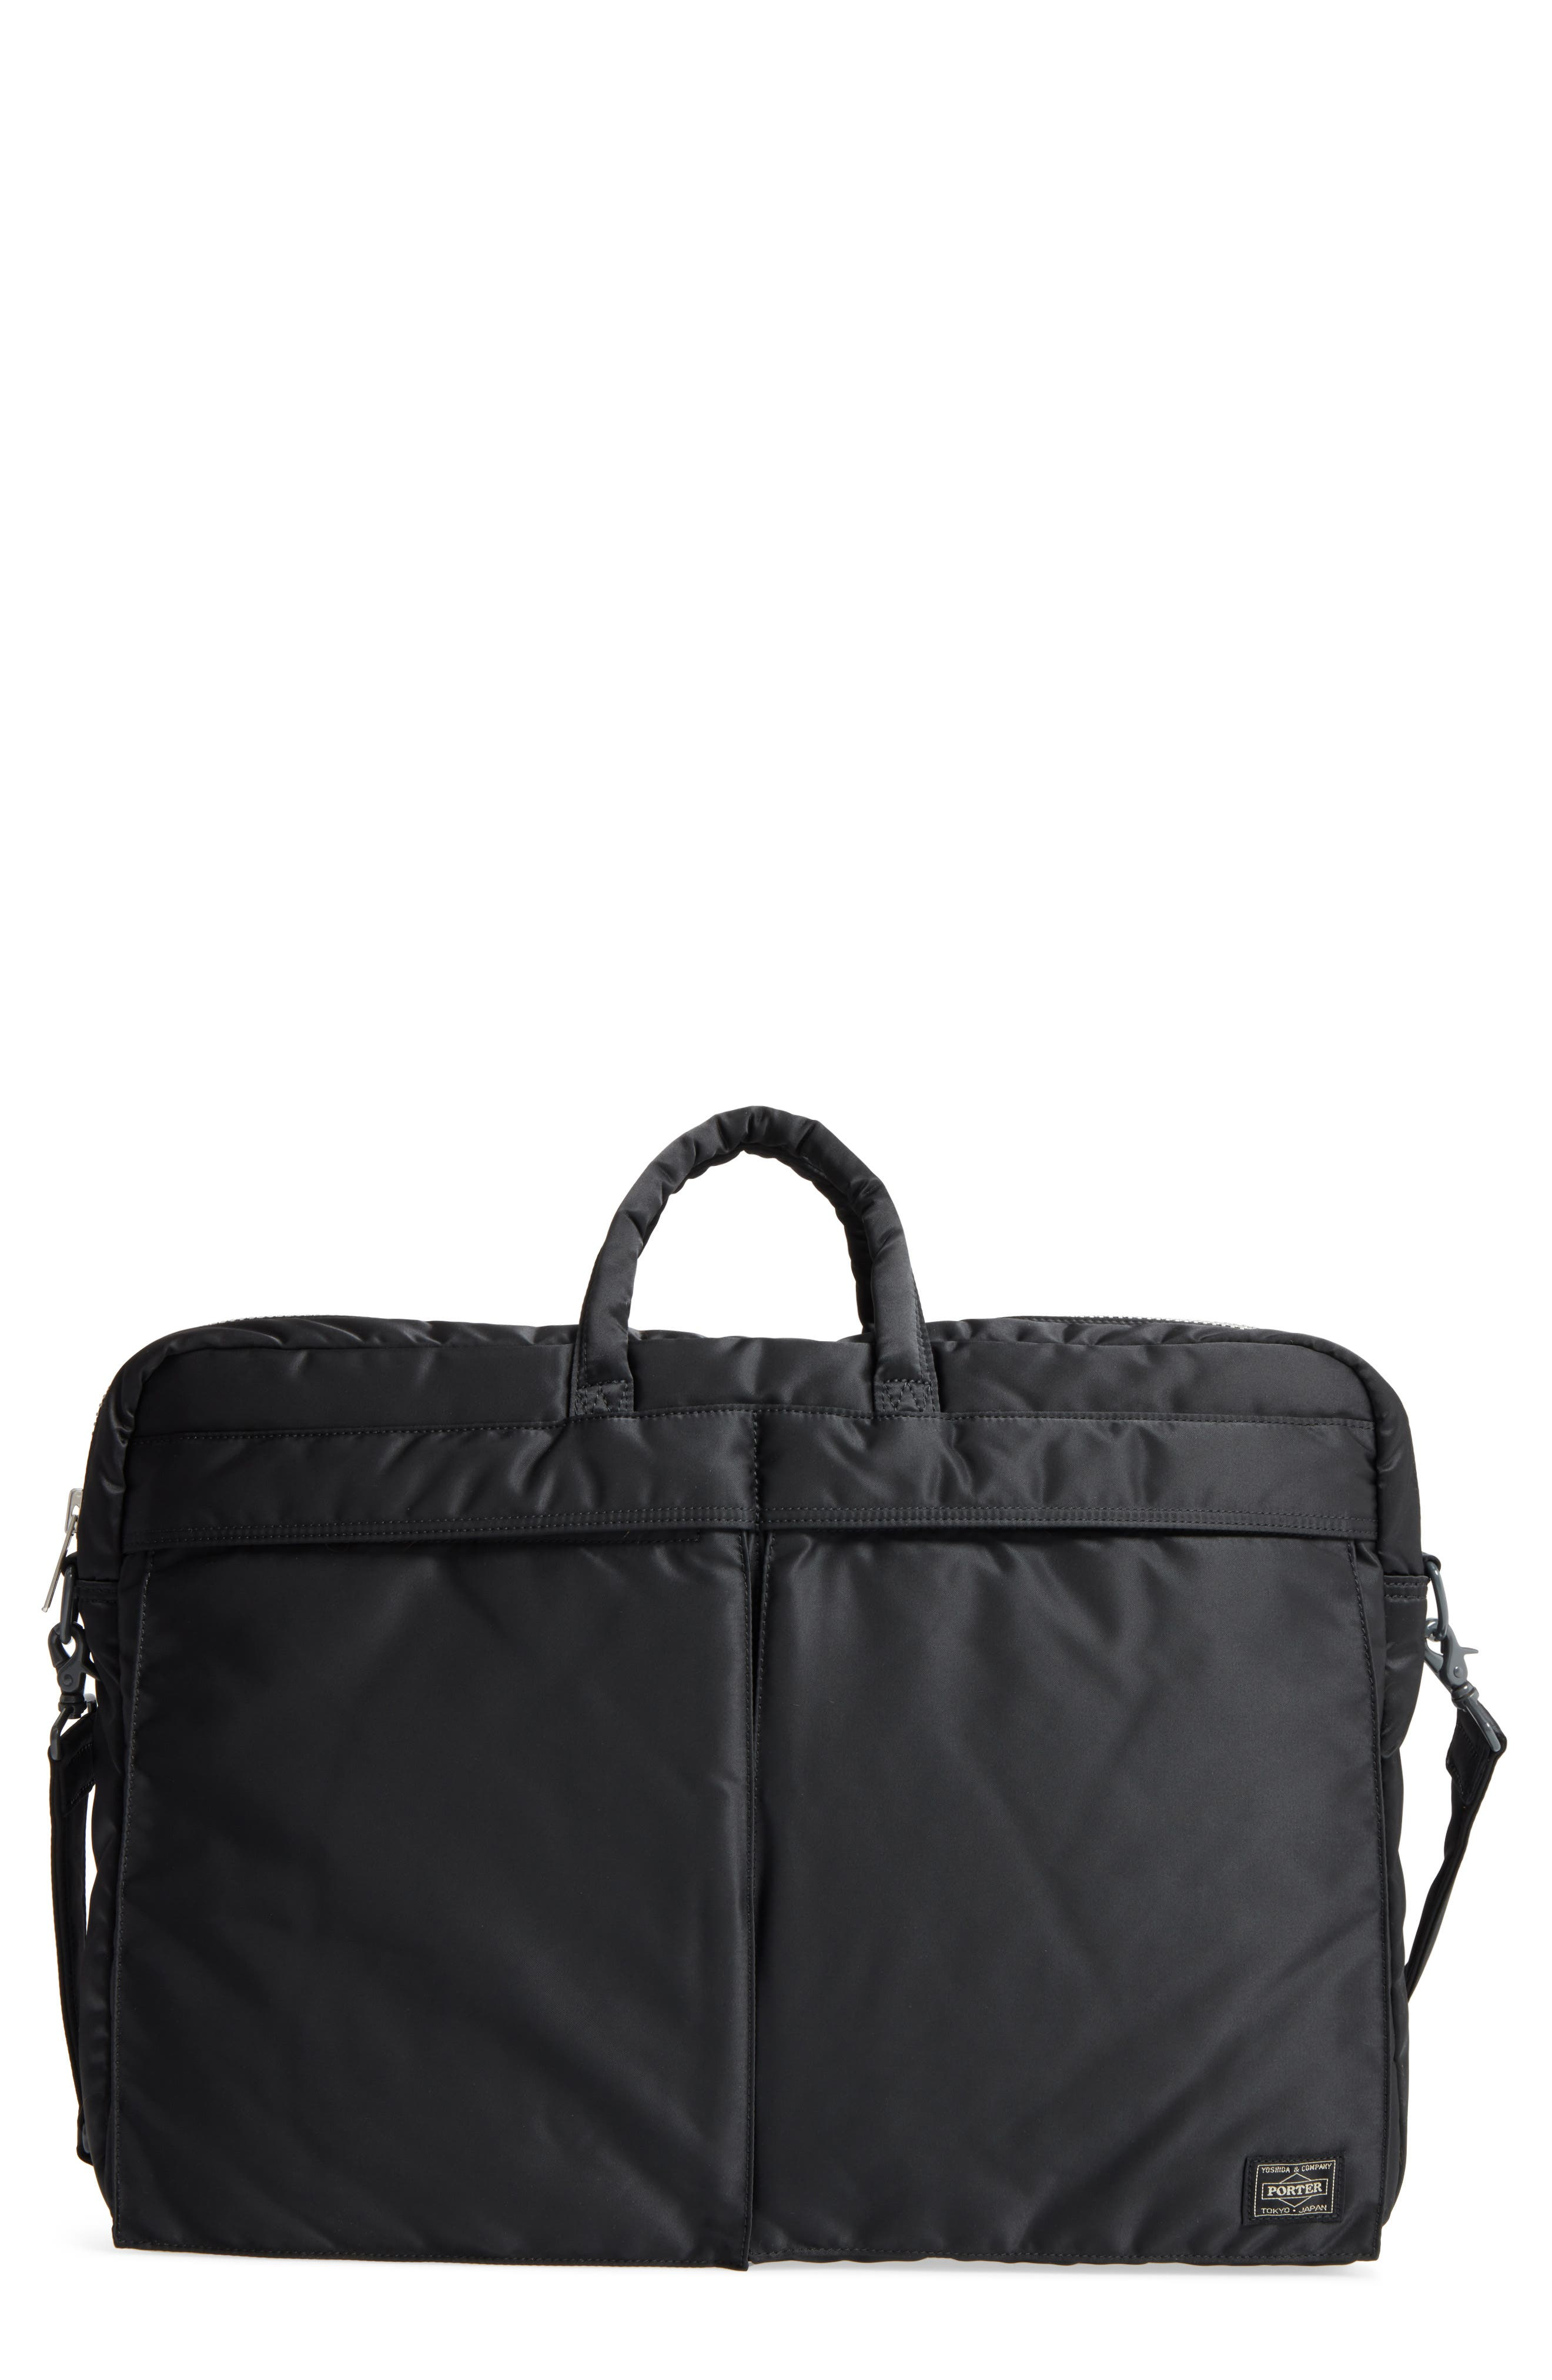 Porter-Yoshida & Co. Tanker Two-Way Briefcase,                         Main,                         color, Black